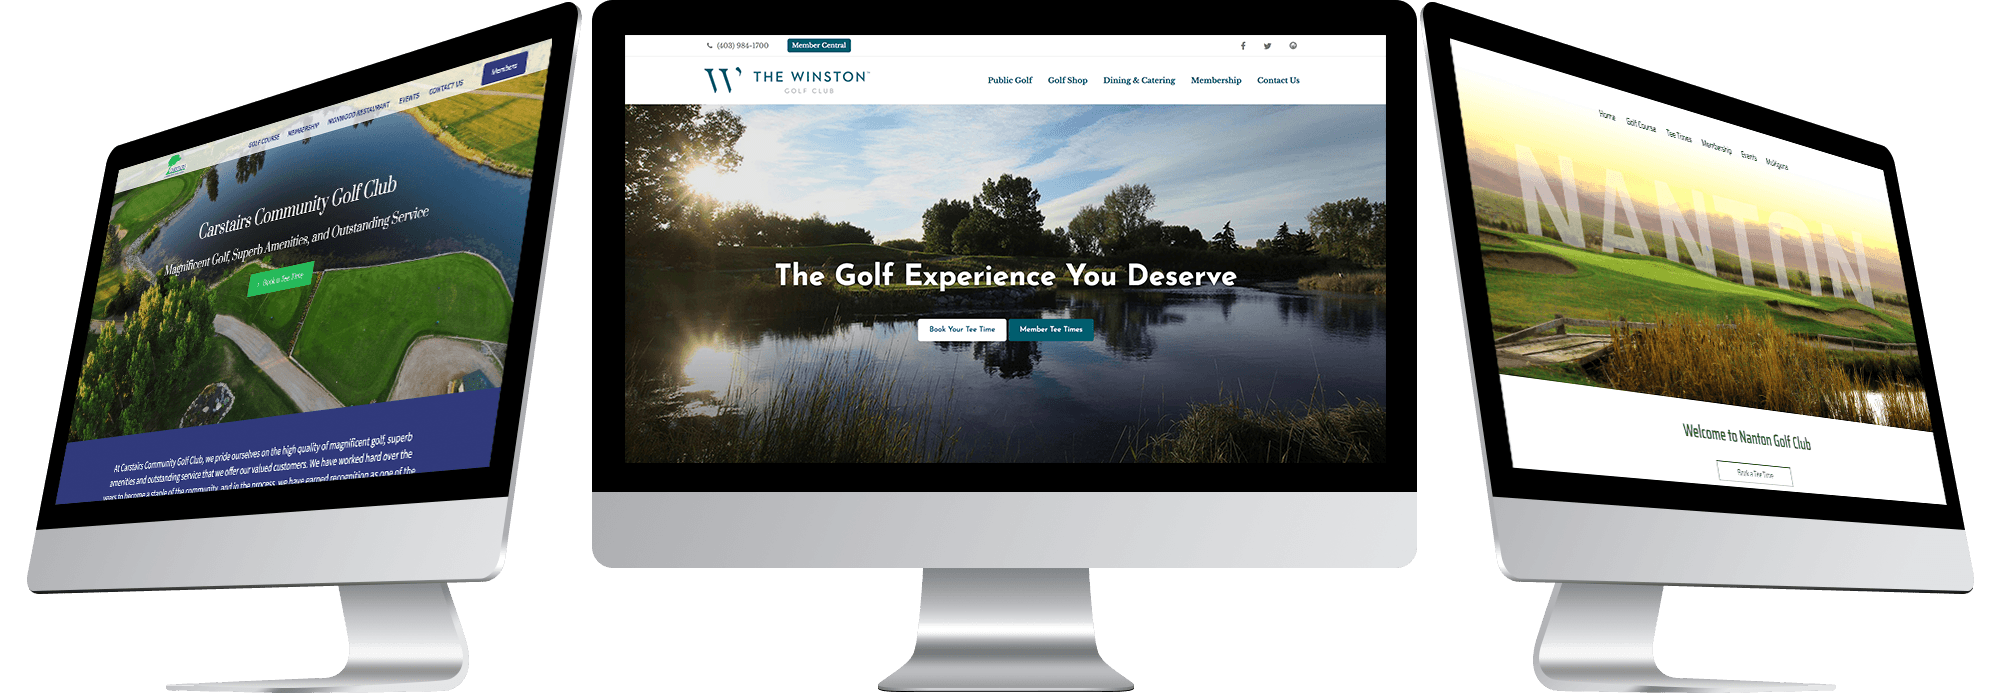 offcourse golf course websites